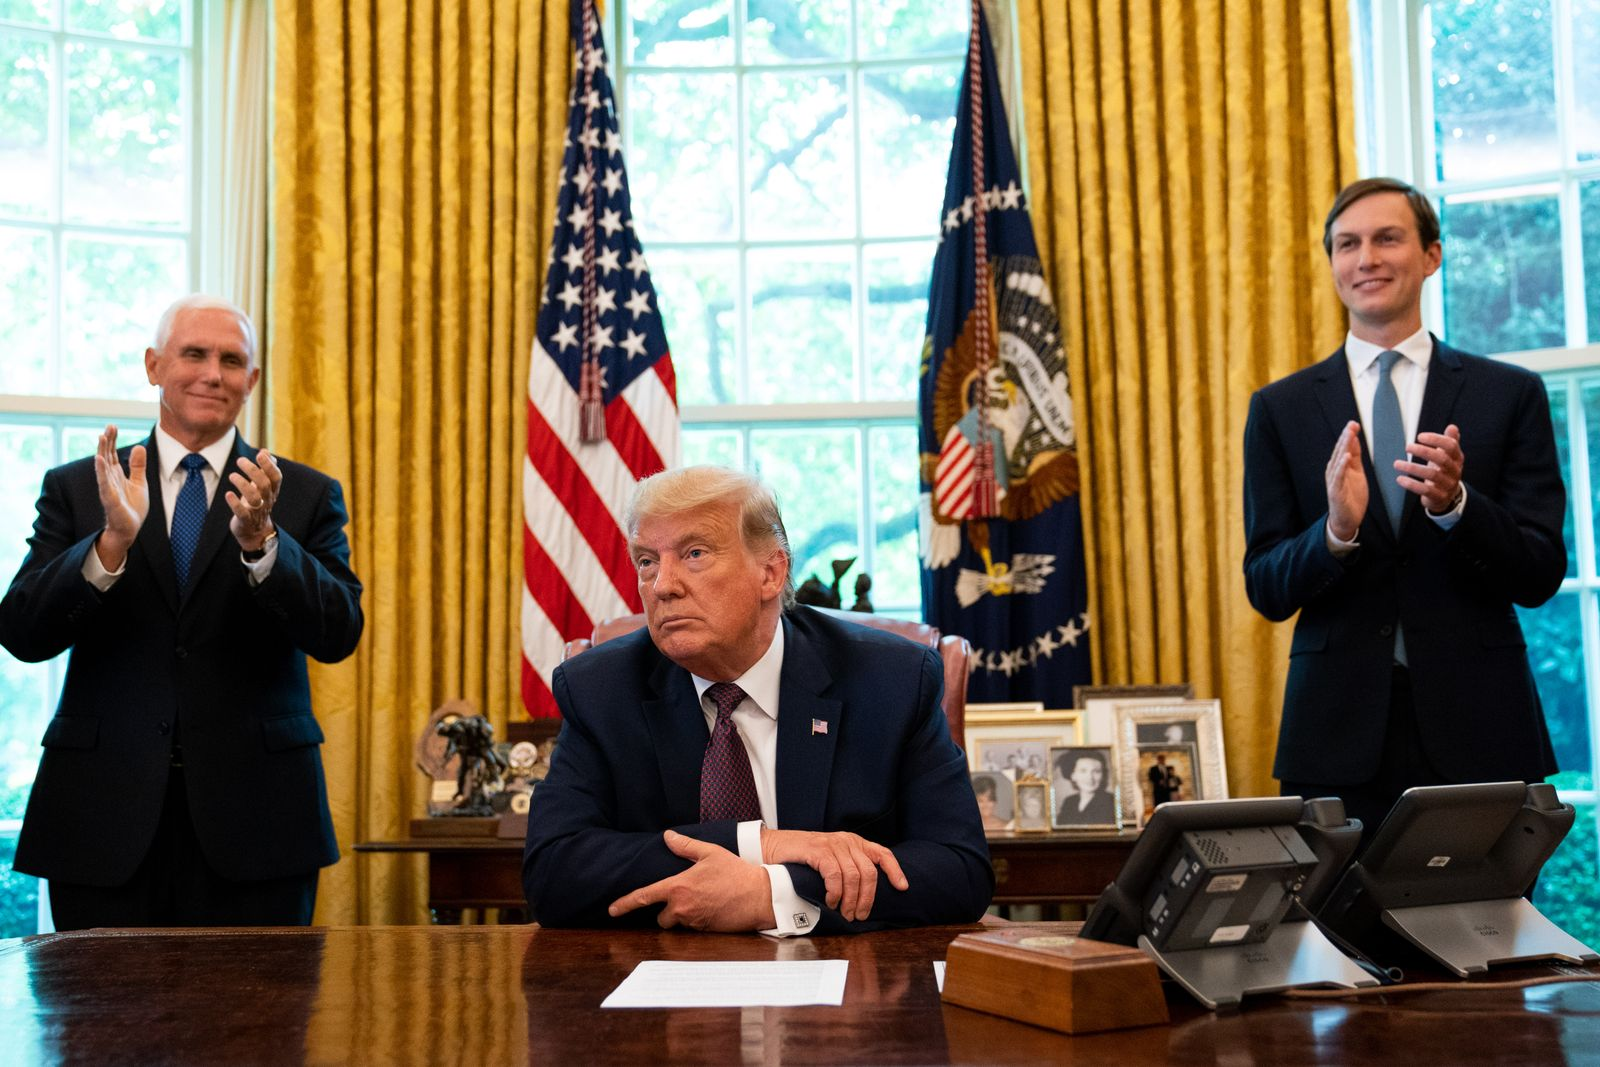 US President Trump announces Bahrain to normalize relations with Israel, Washington, USA - 11 Sep 2020